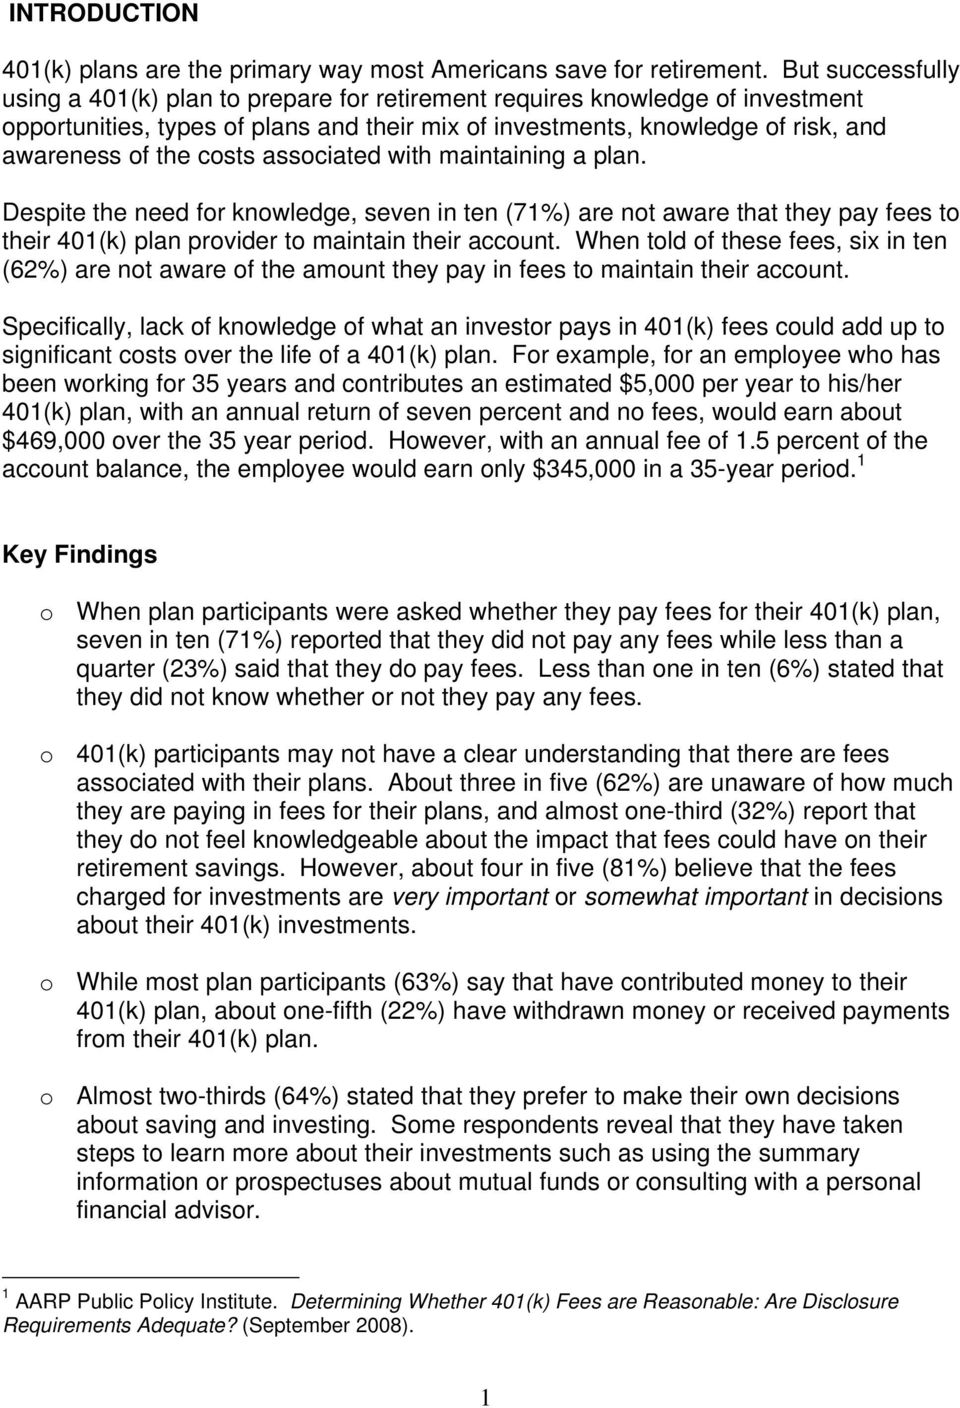 costs associated with maintaining a plan. Despite the need for knowledge, seven in ten (71) are not aware that they pay fees to their 401(k) plan provider to maintain their account.